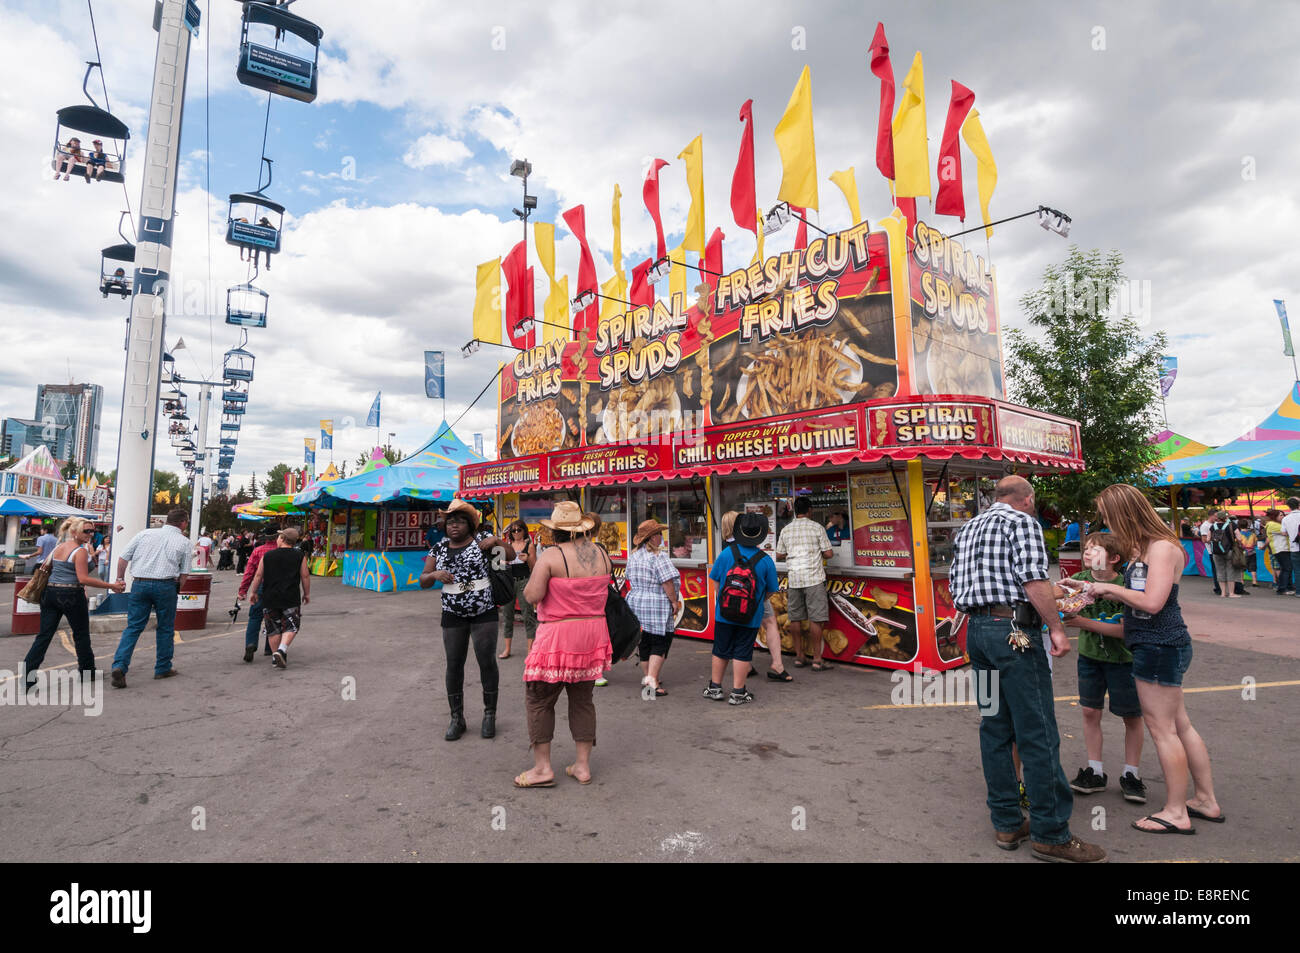 Spiral Spuds Food Outlet Calgary Stampede Midway